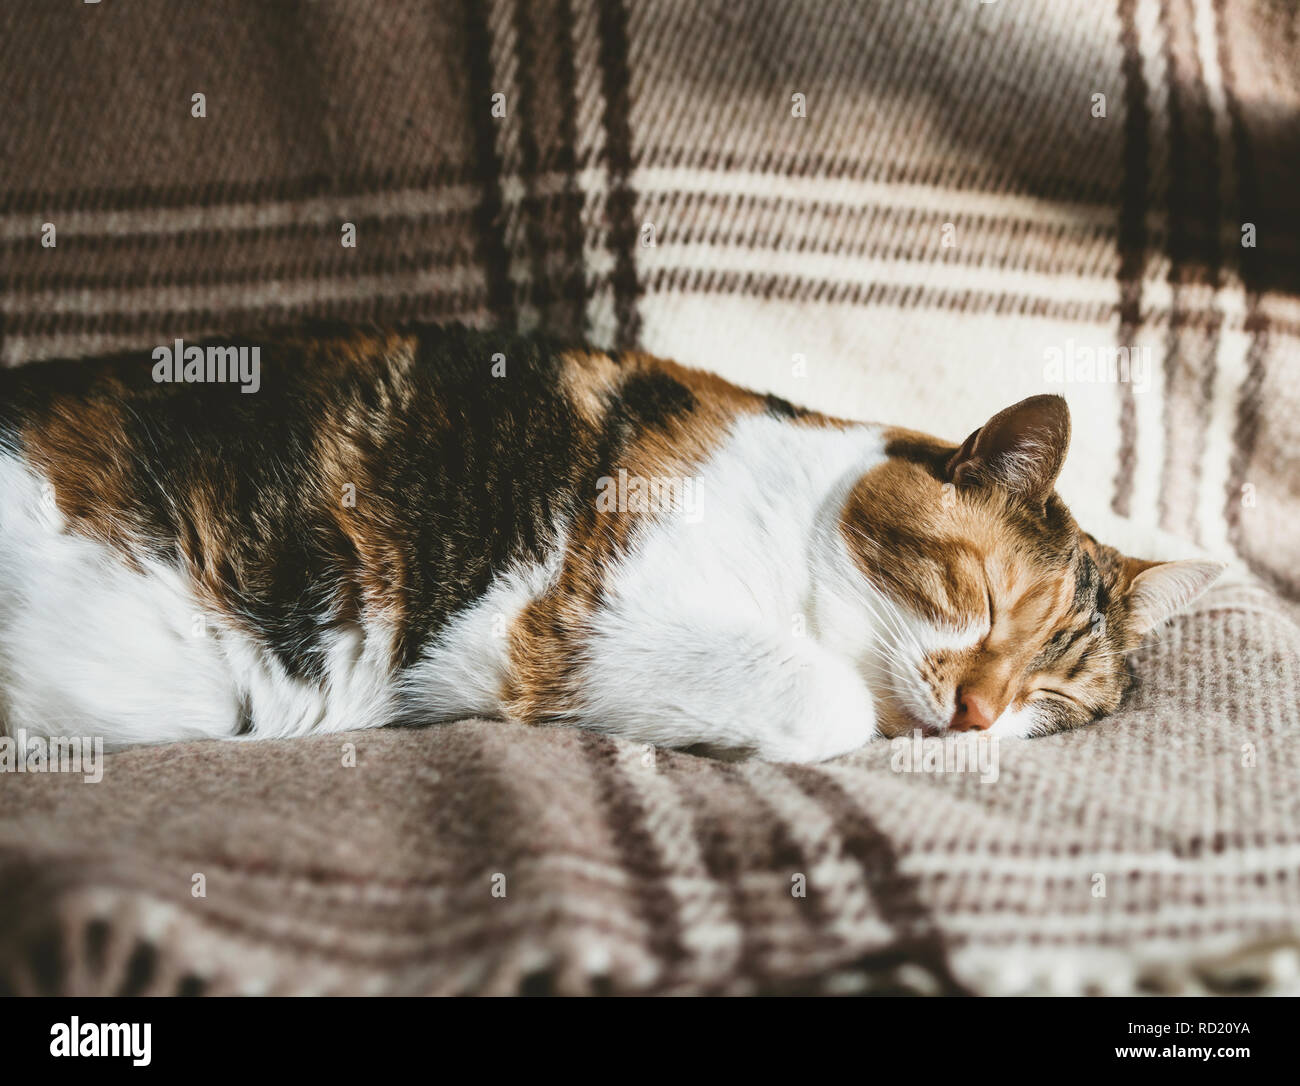 Extremely cute cat deep sleep on the blanket on a warm spring day - calm and peacefulness concept - Stock Image